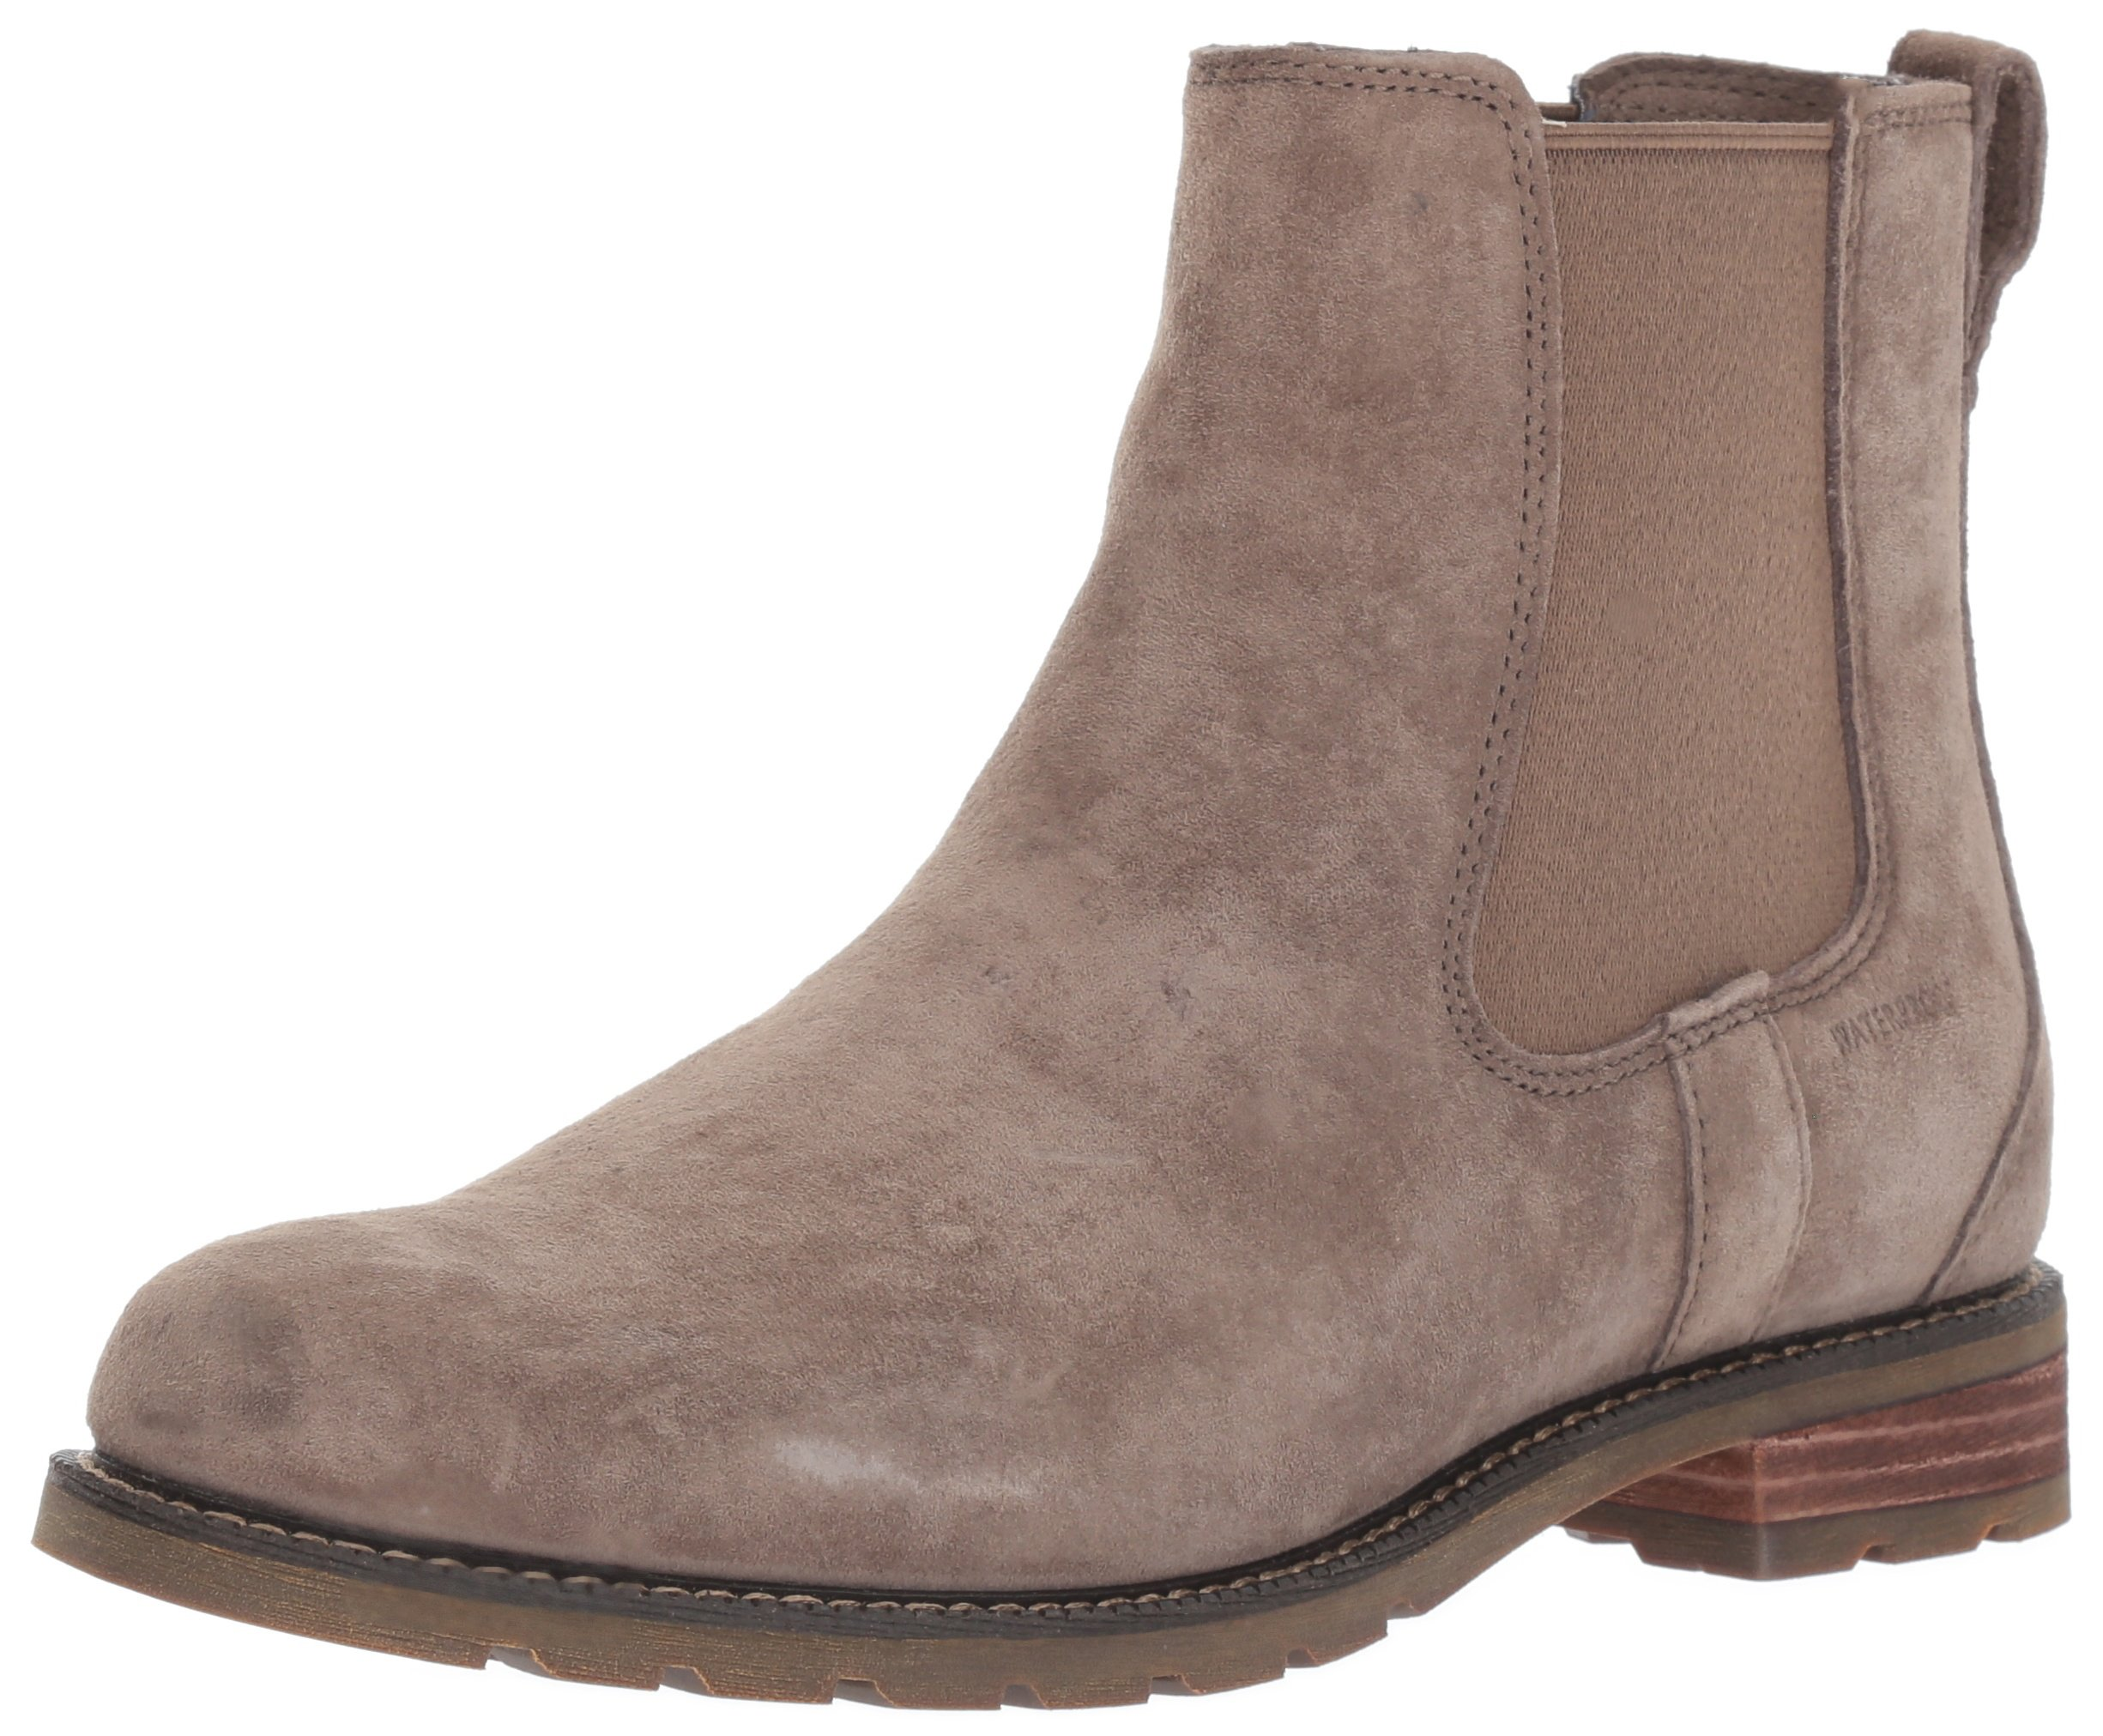 Ariat Women's Wexford H2O Work Boot, Taupe, 7 B US